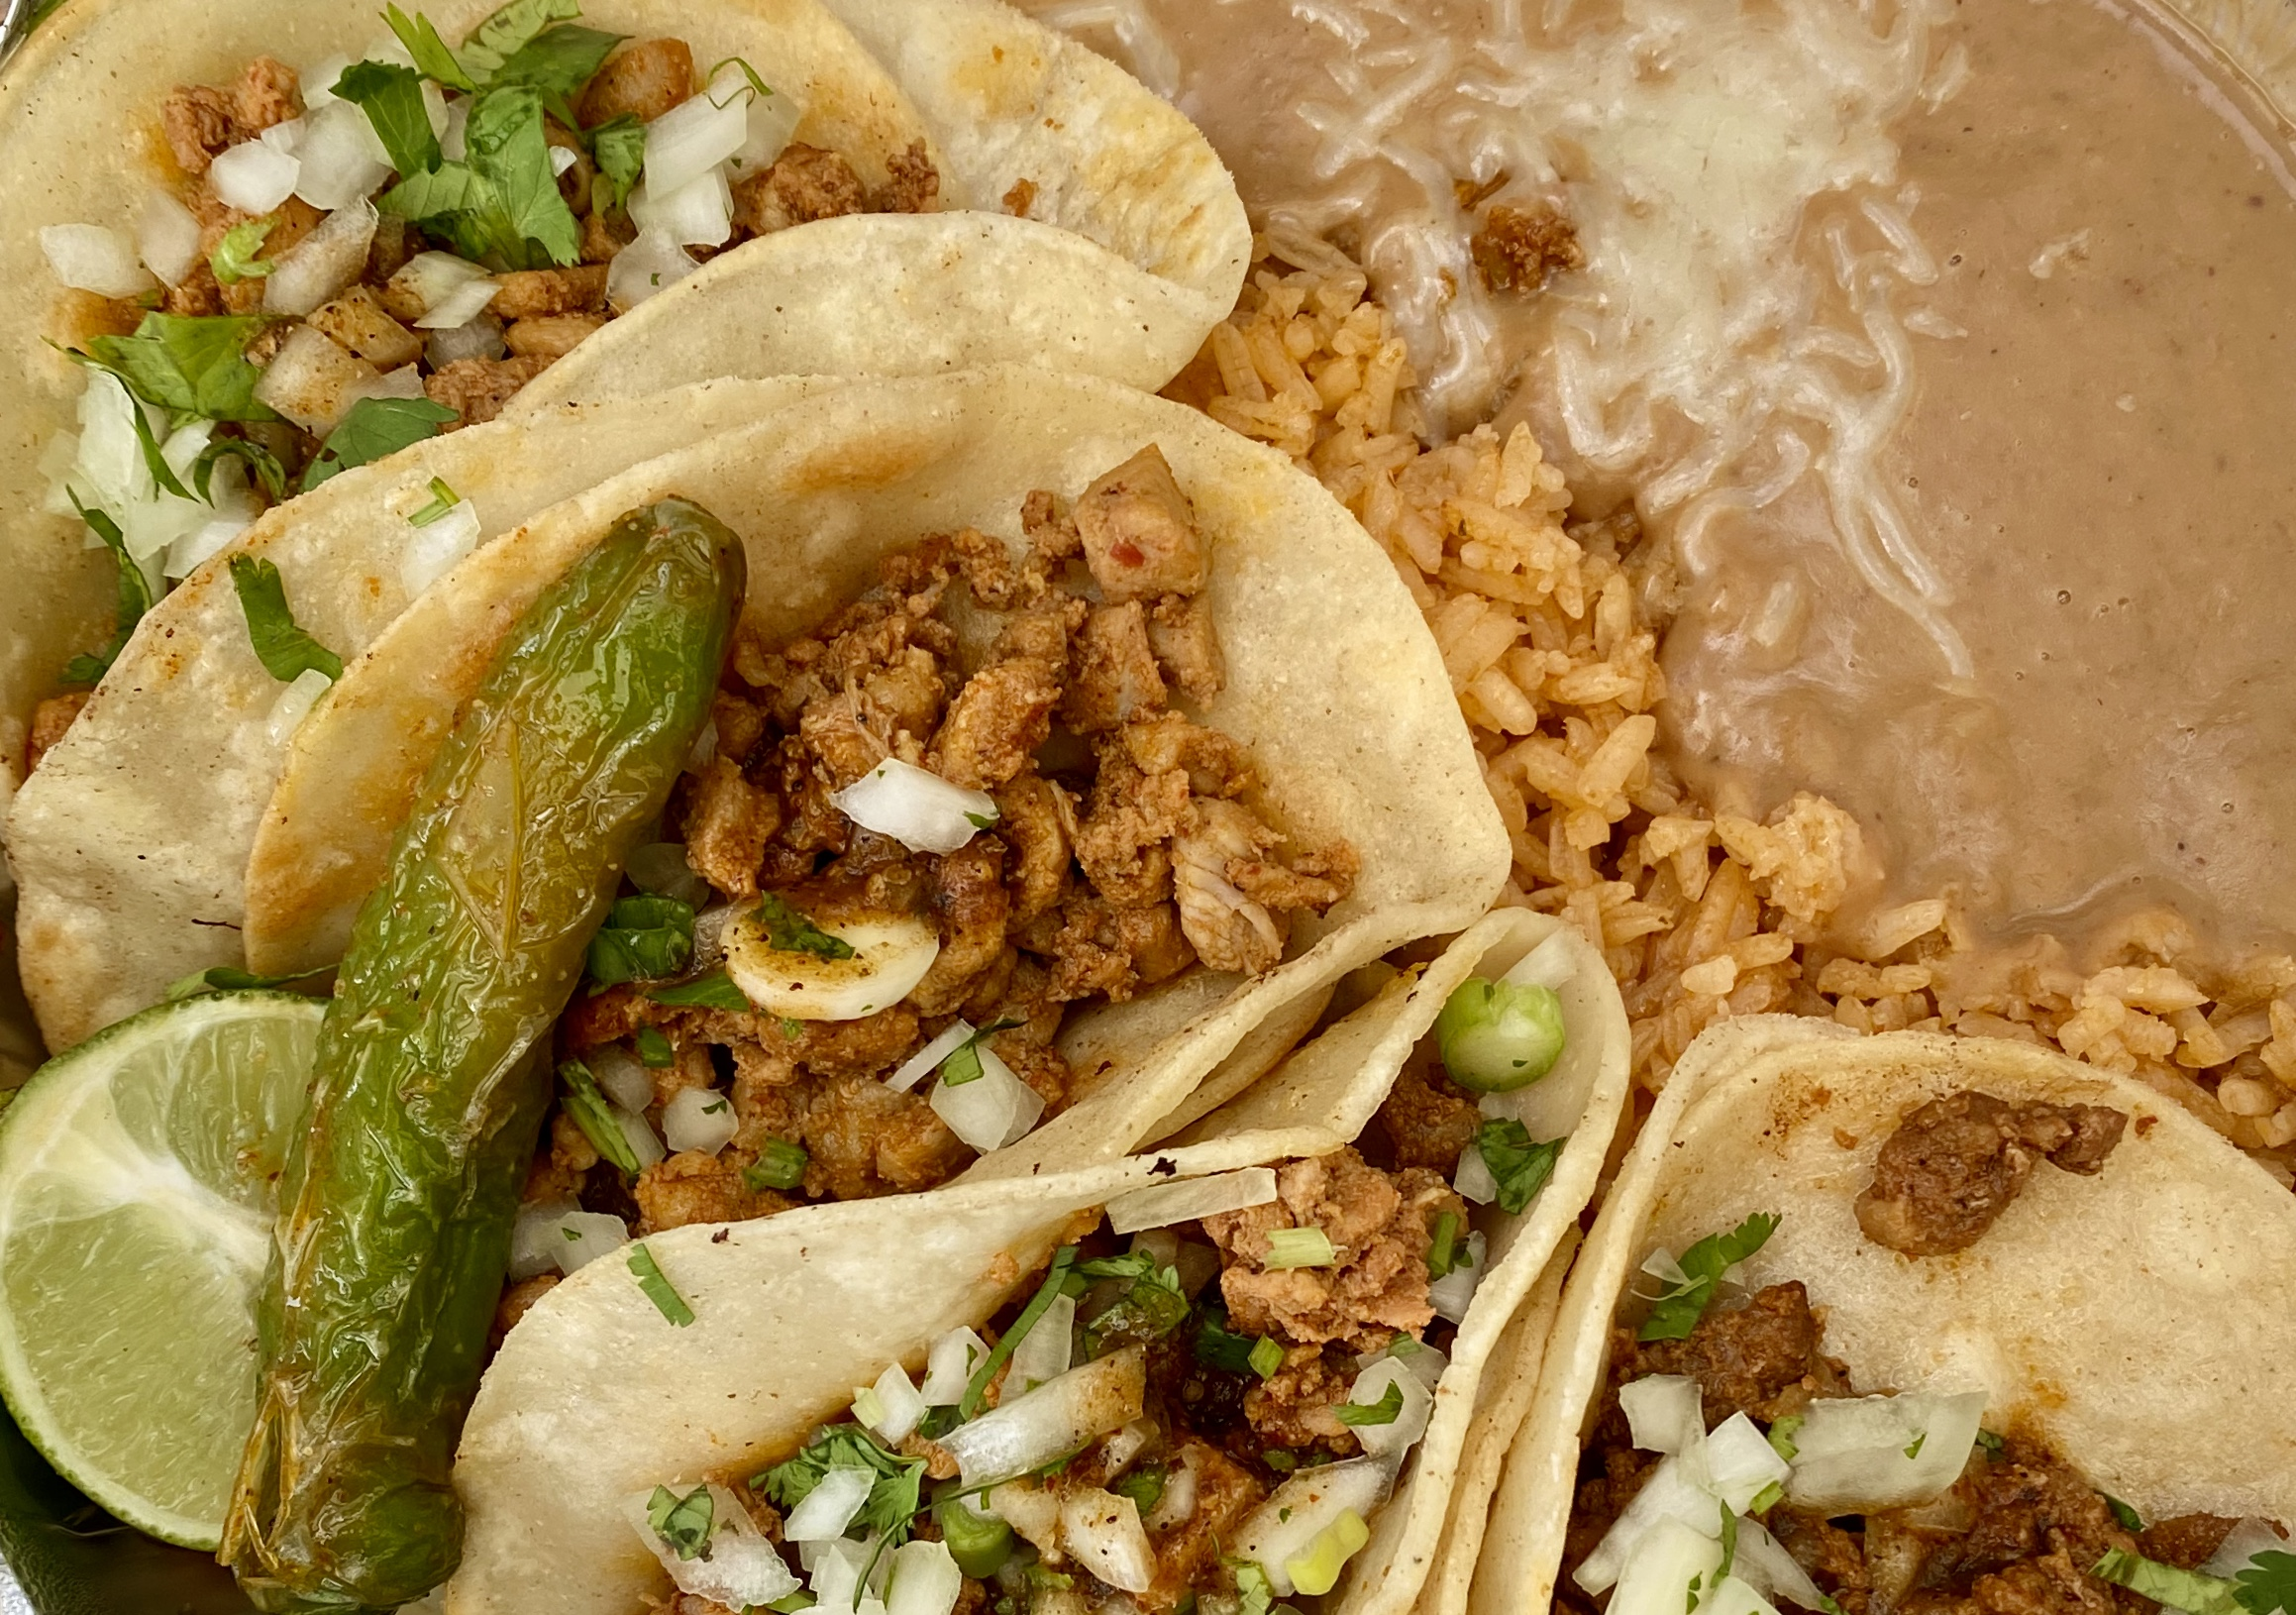 The taco plate. (Image: Karen Rose/Seattle Refined)